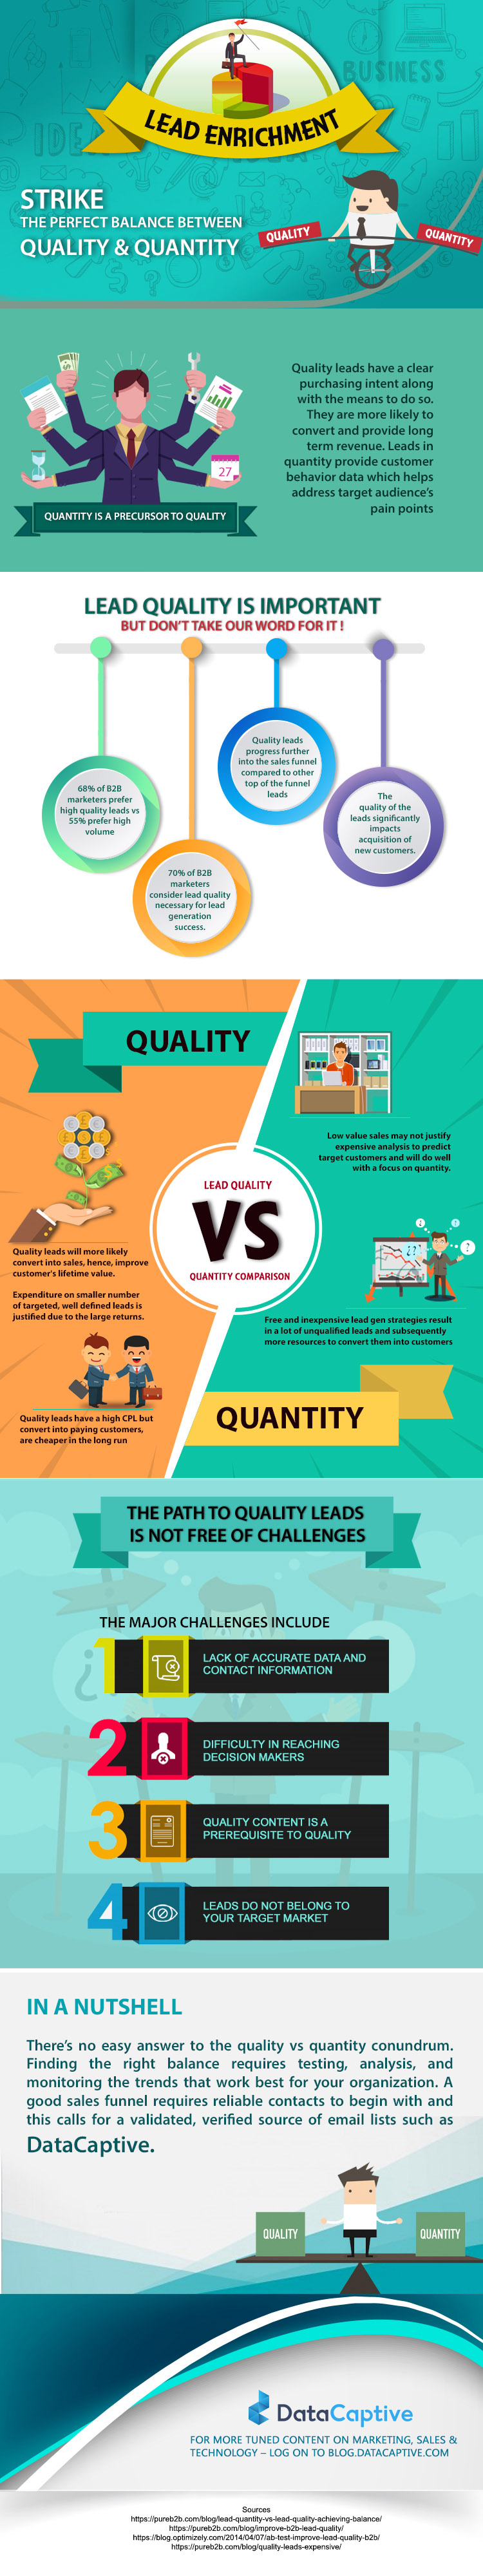 Lead Enrichment - Quality vs Quantity